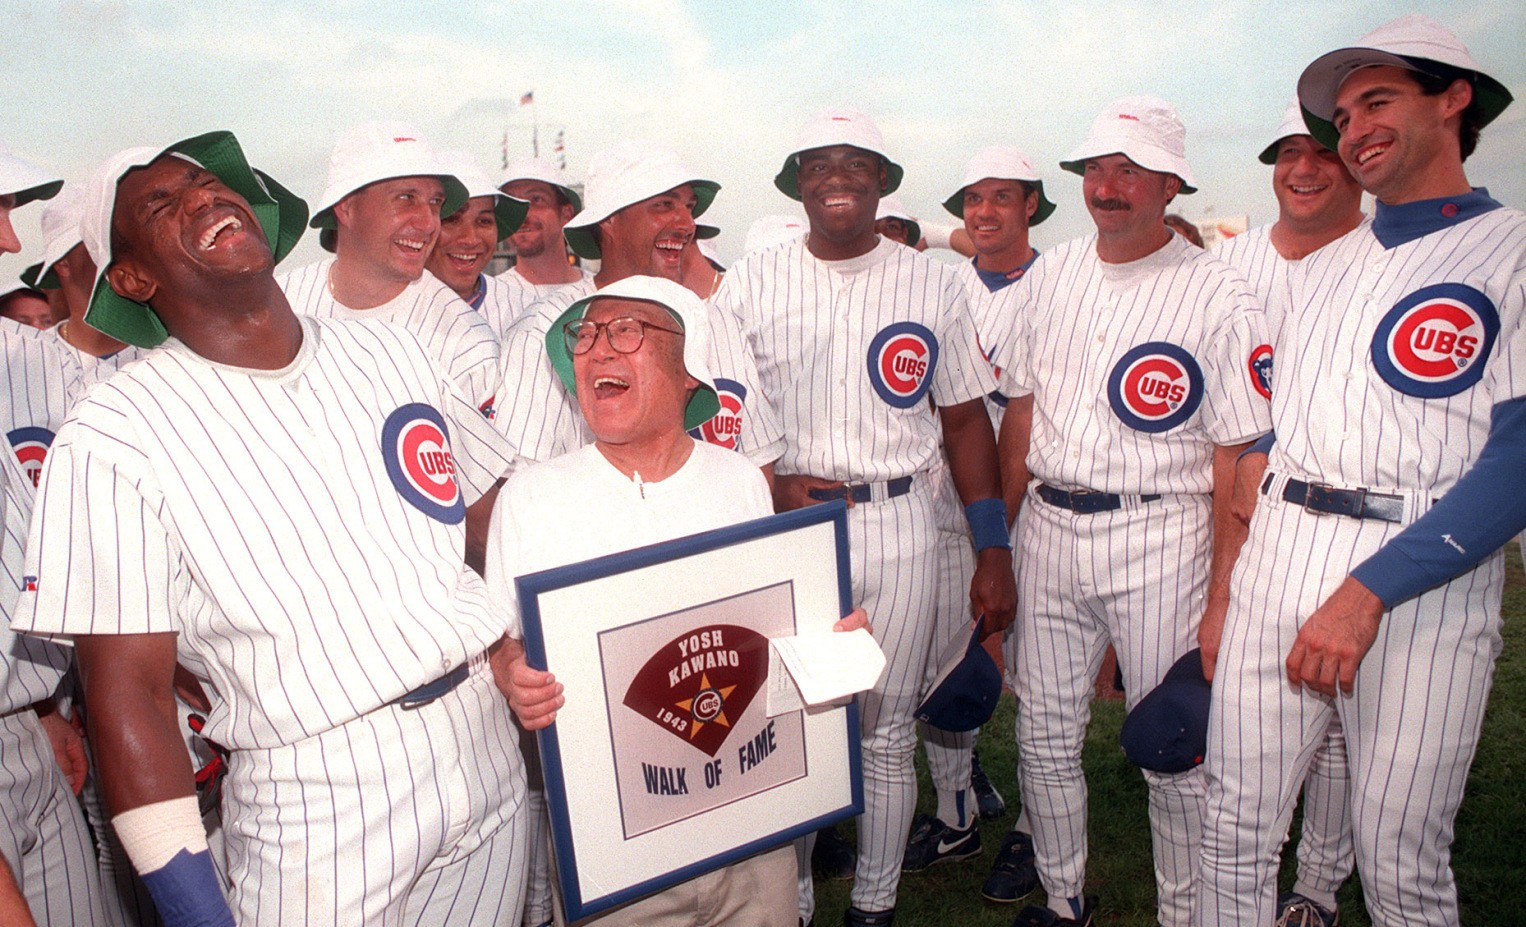 745baa5c2 click to enlarge Yosh Kawano is inducted into the Cubs Walk of Fame in  1996. - TOM CRUZE